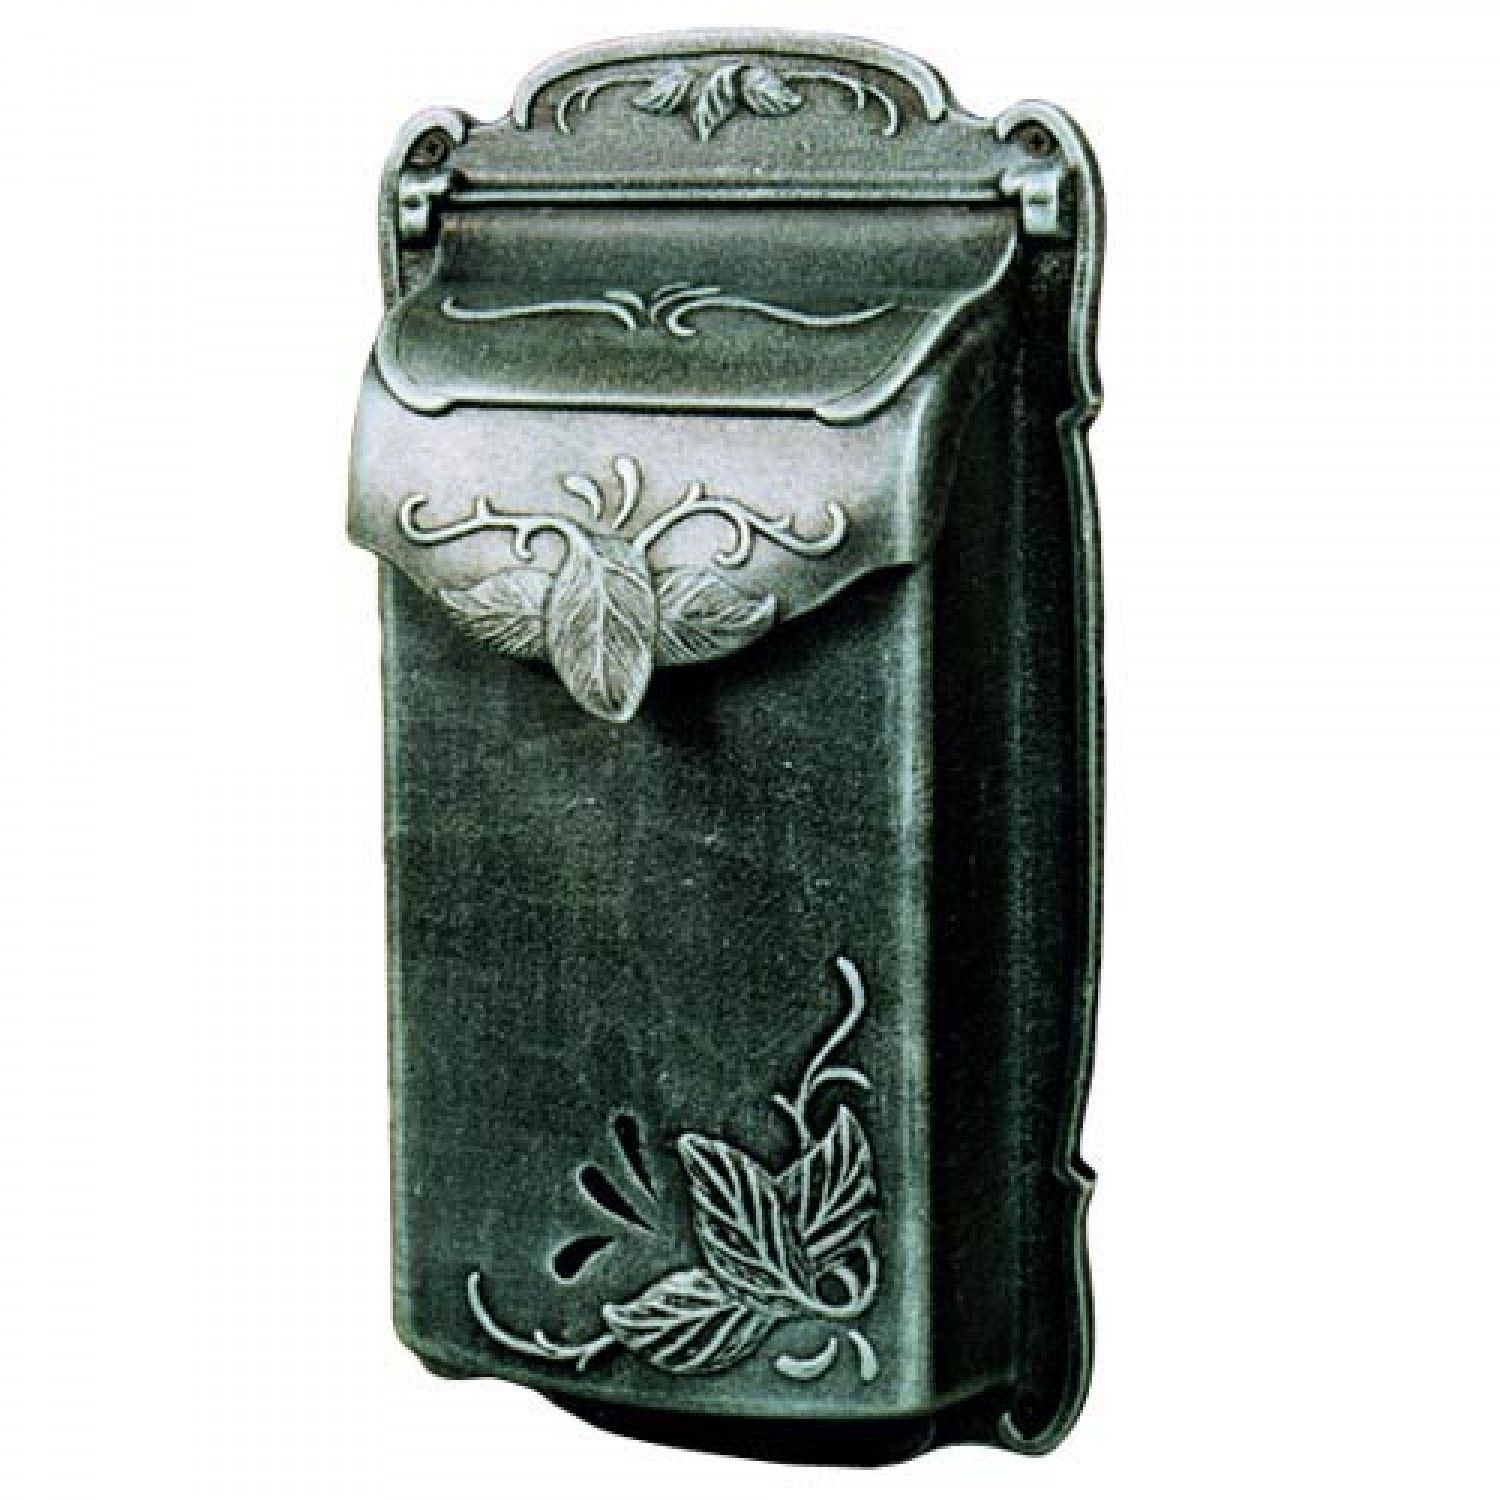 residential mailboxes wall mount. $138.95 Floral Vertical Wall-Mount Mailbox Residential Mailboxes Wall Mount H